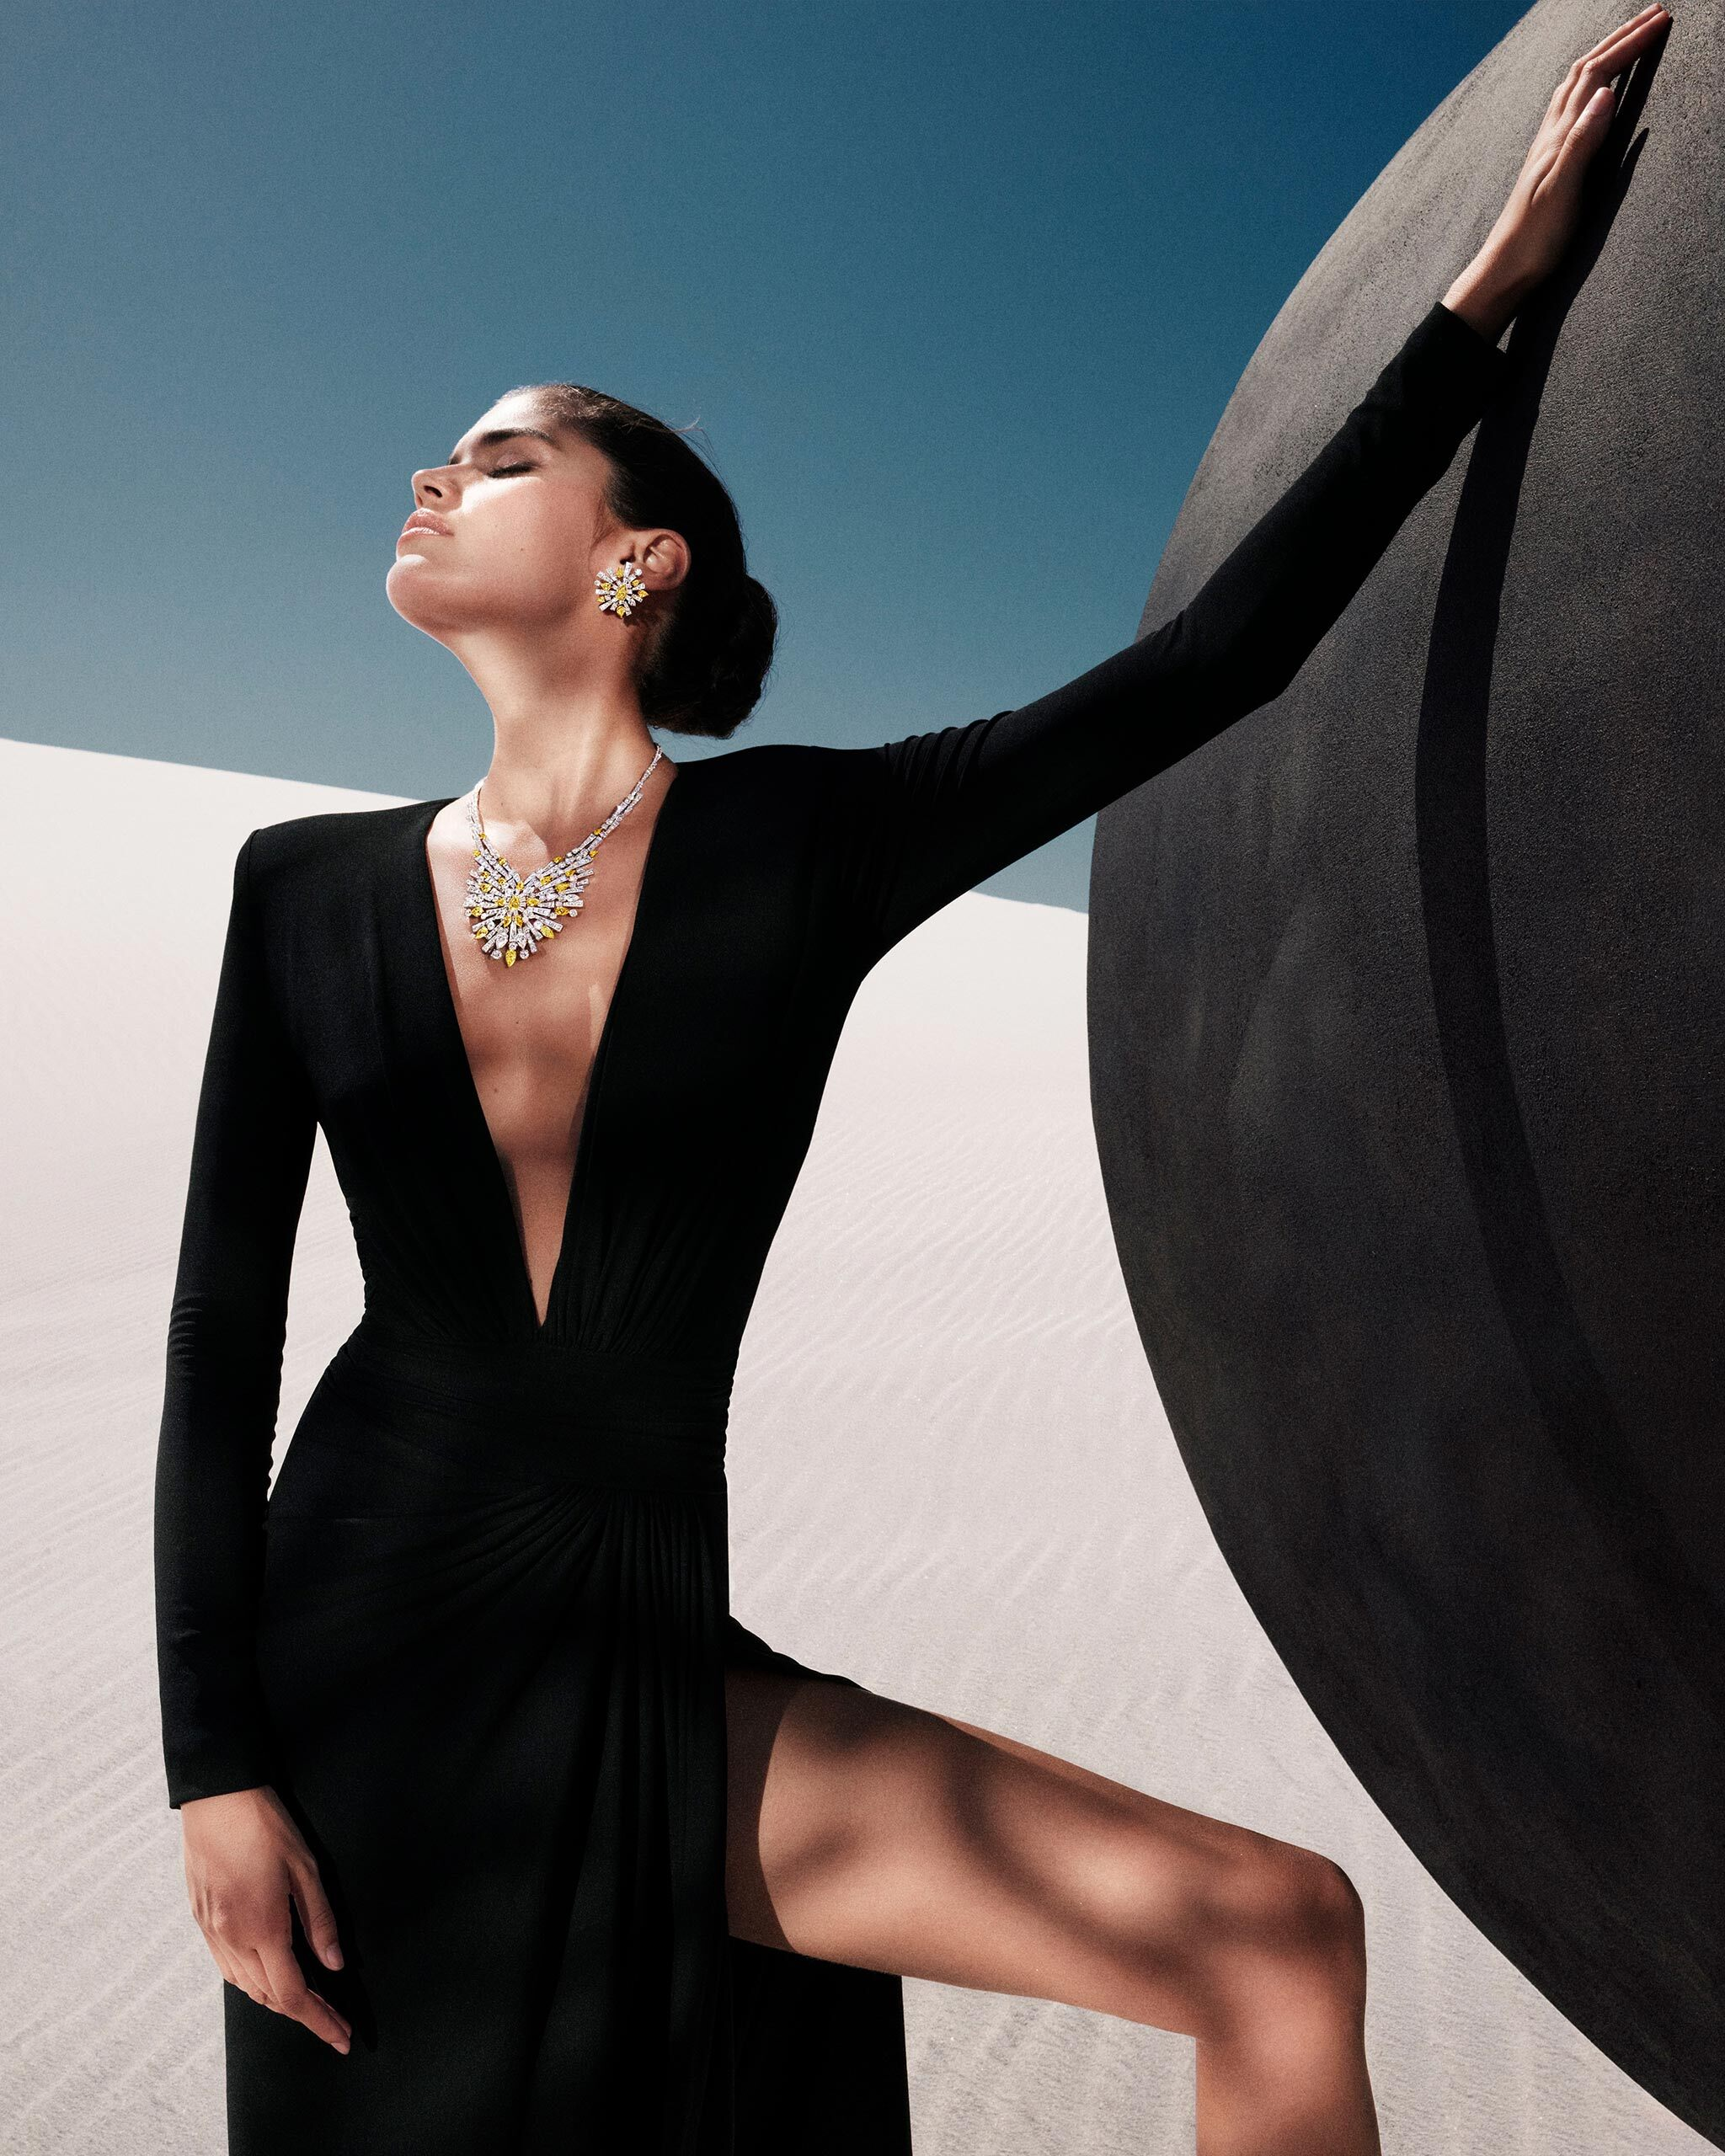 Model wears New Dawn diamond jewels from the Graff Tribal collection, in a desert